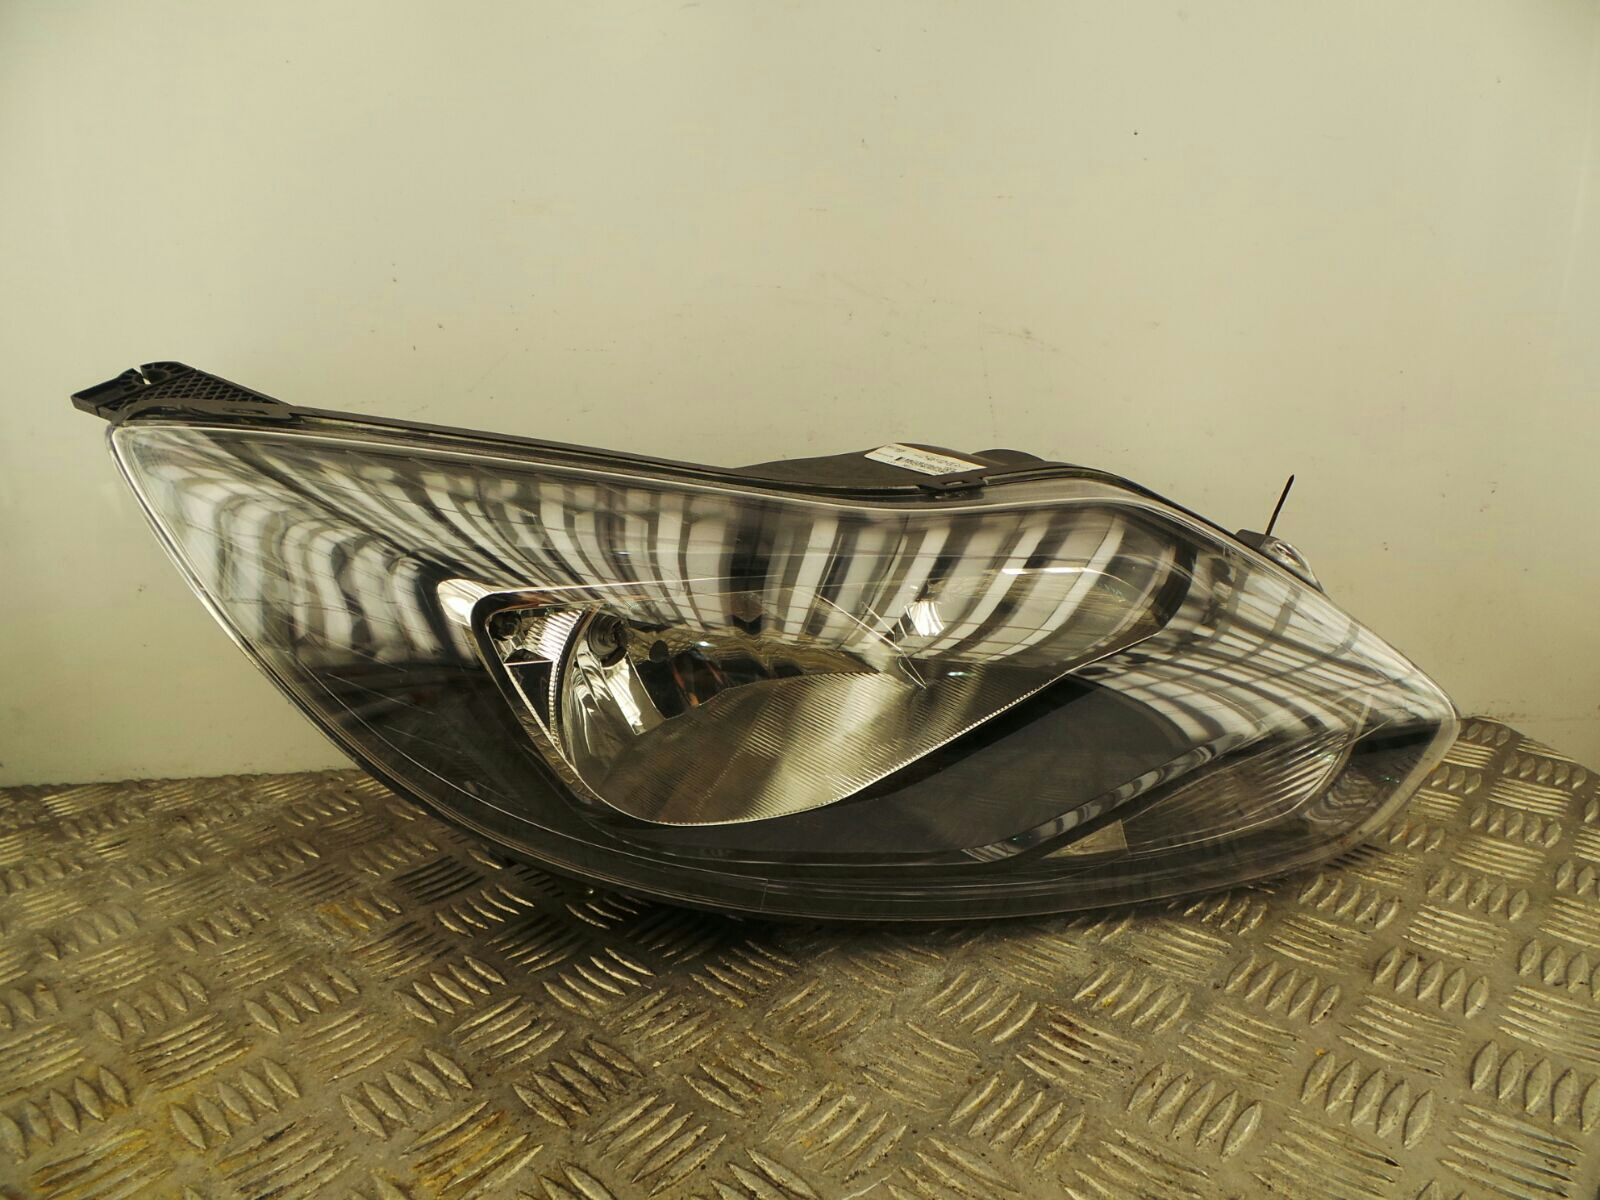 Ford Focus 2011 To 2014 O/S Right Drivers Side Headlamp Headlight 1873934